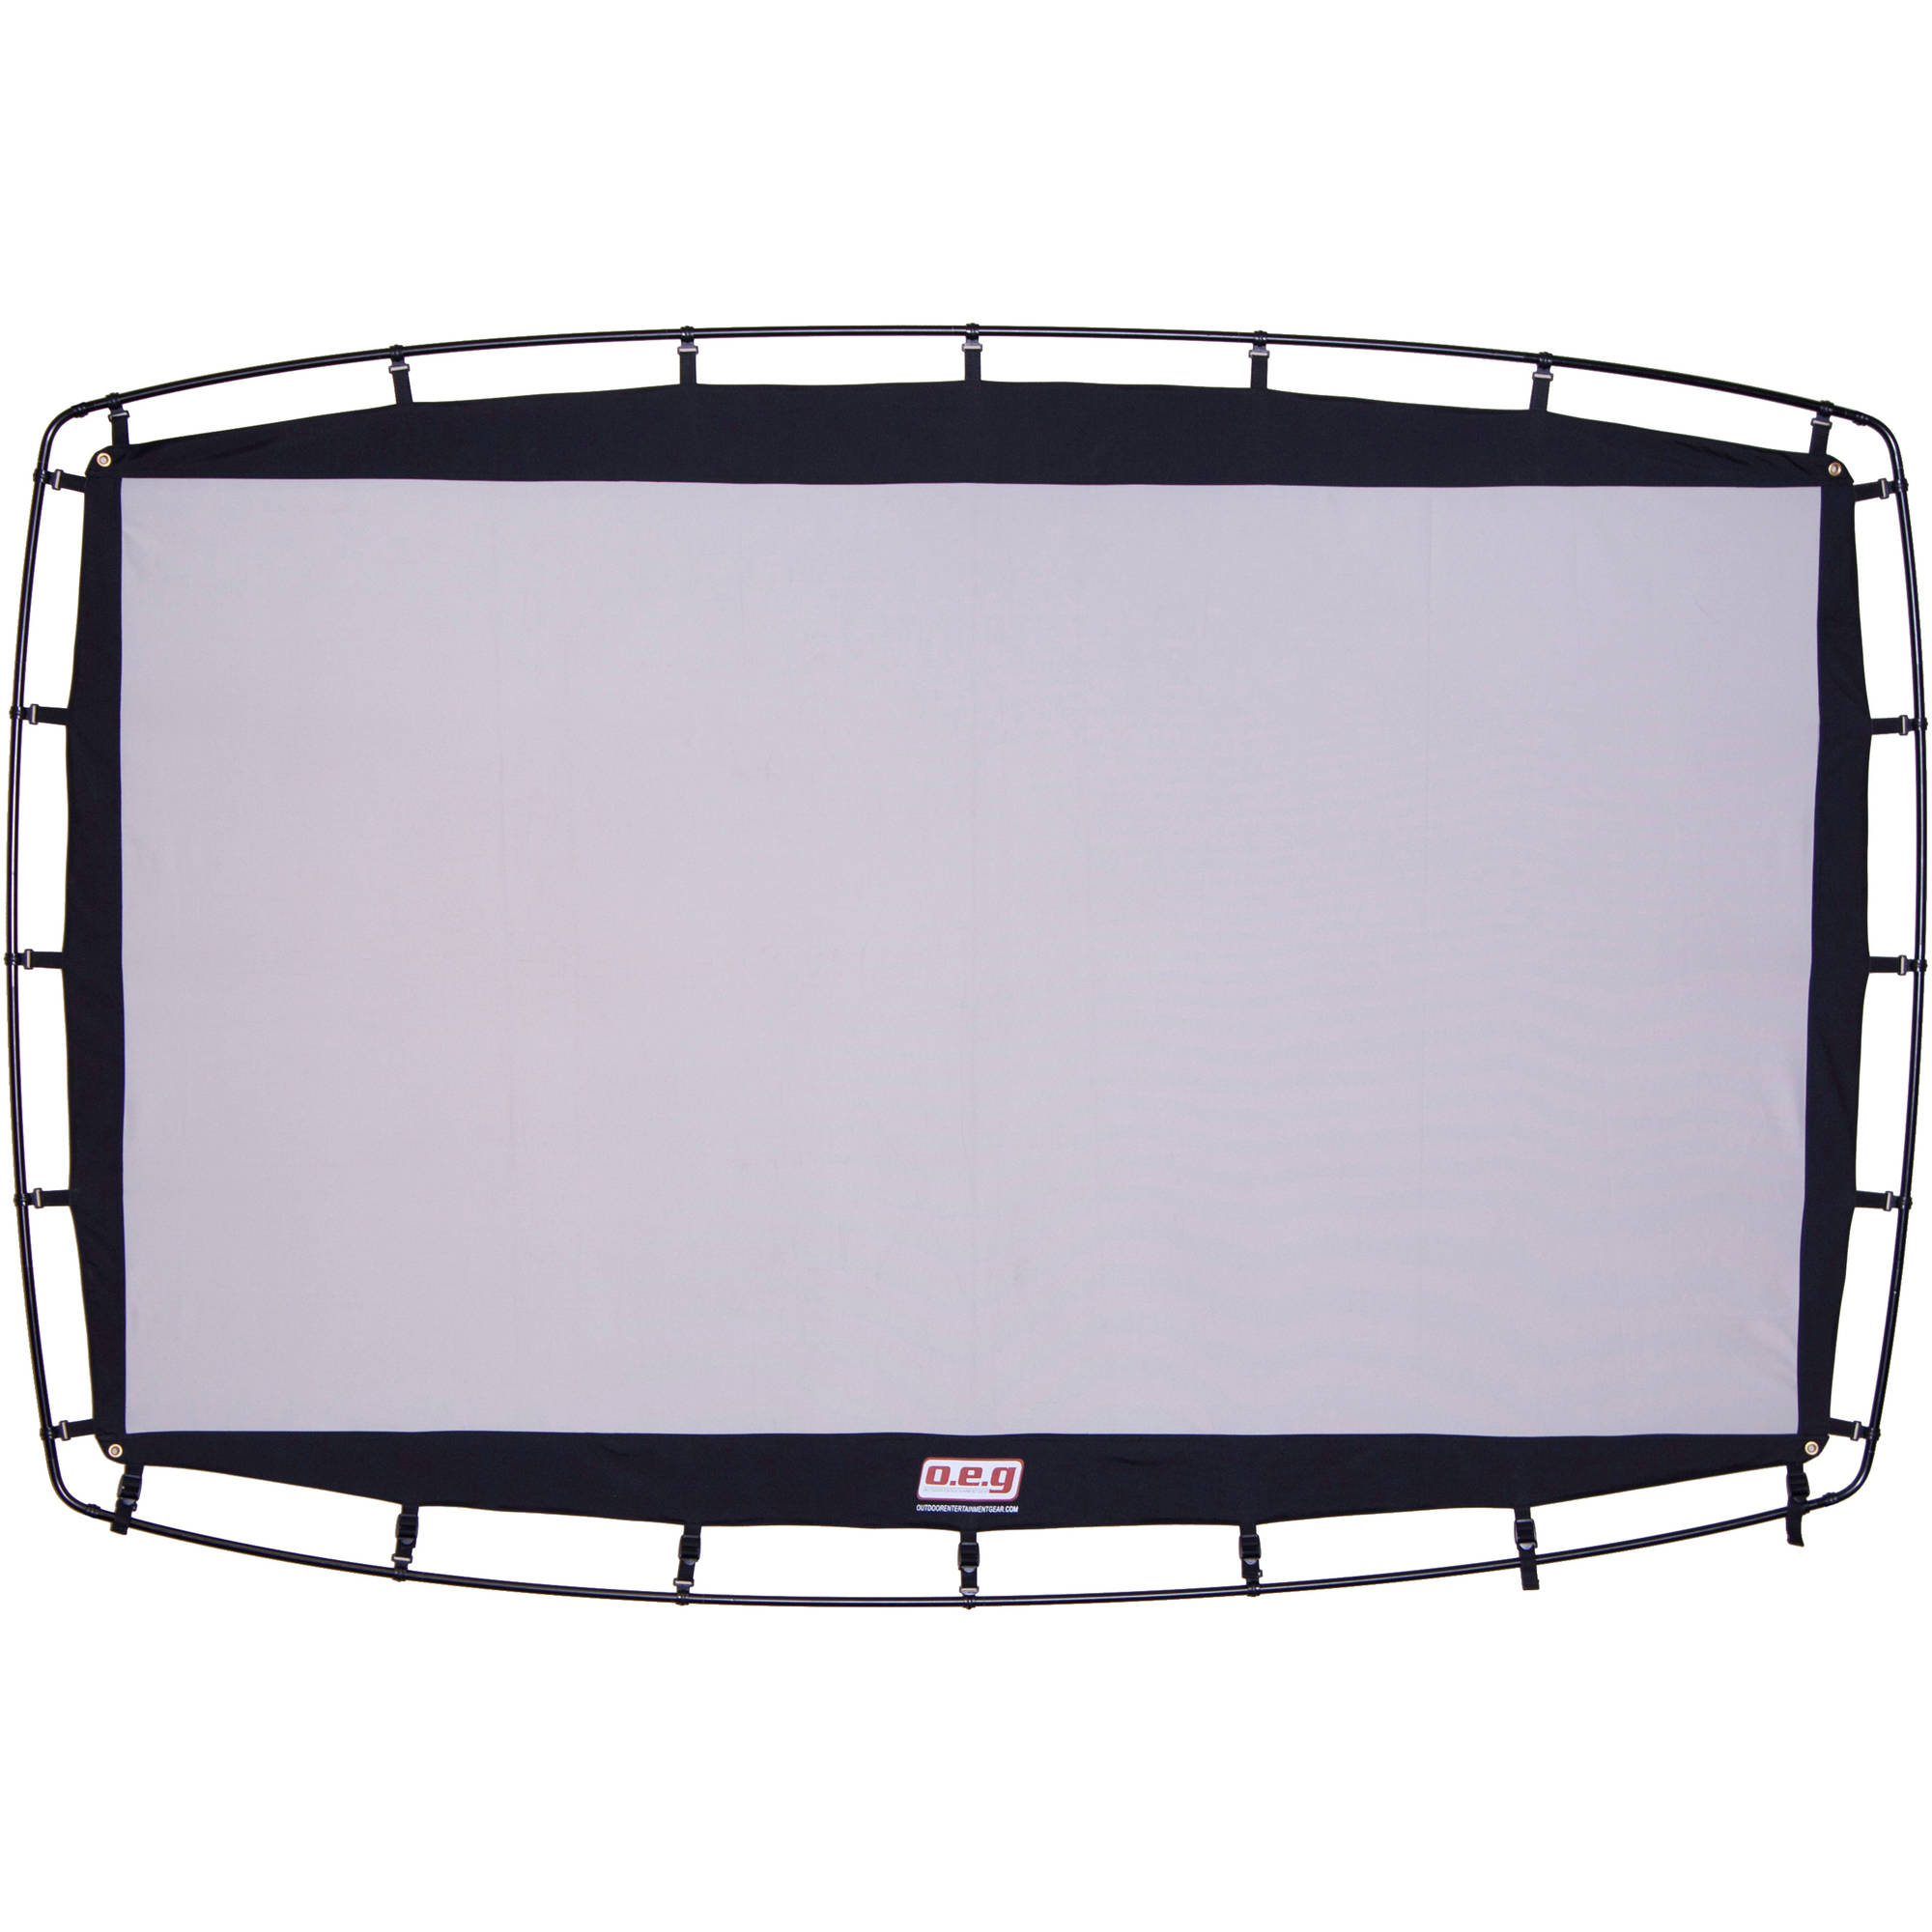 "Camp Chef High Resolution Outdoor Movie Screen, 115"" by Camp Chef"